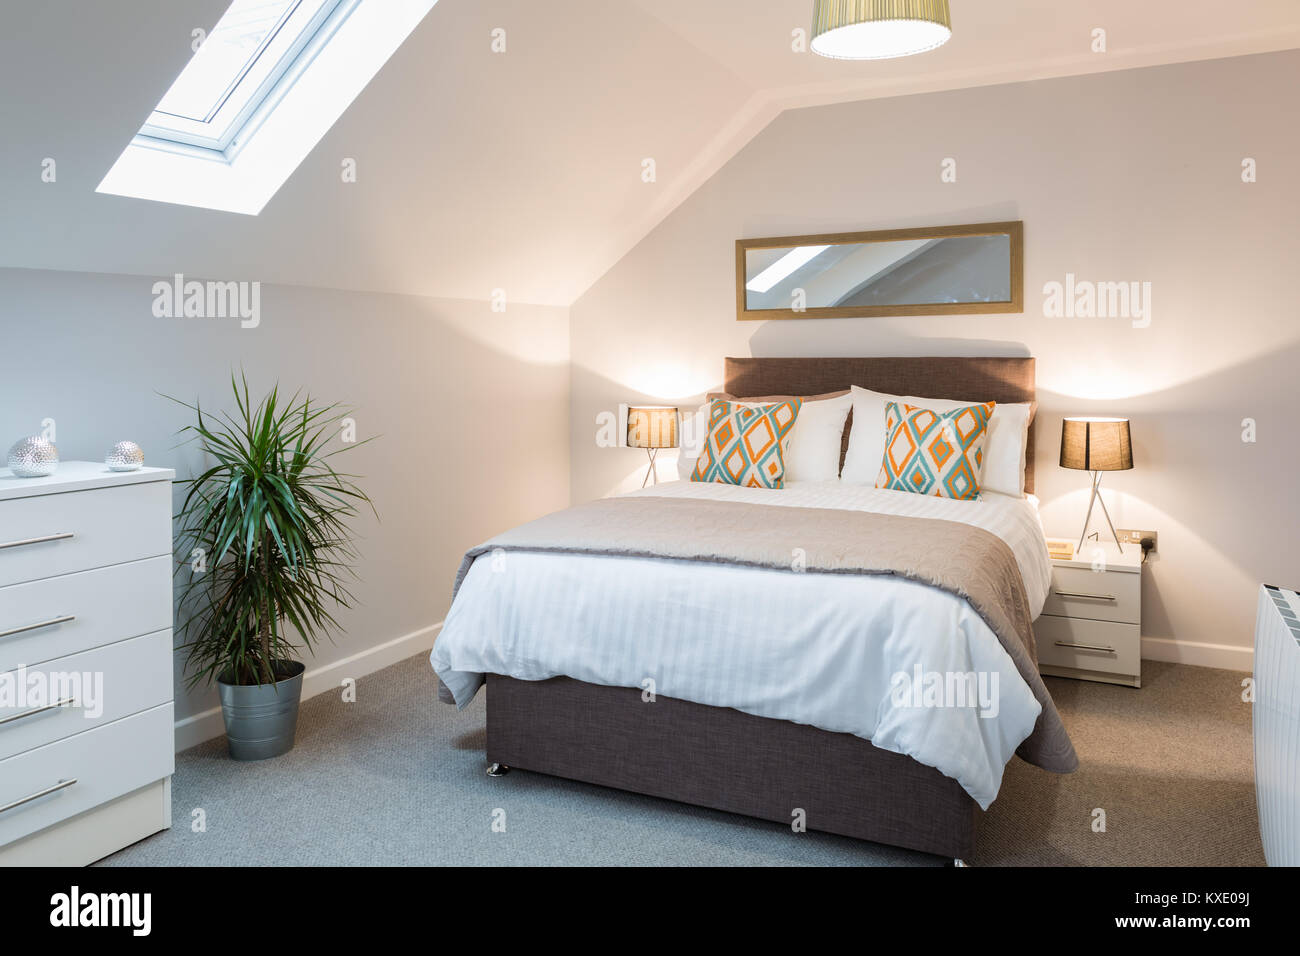 Picture of: Master Bedroom With Large Comfortable Double Bed And Bedside Cabinets Stock Photo Alamy